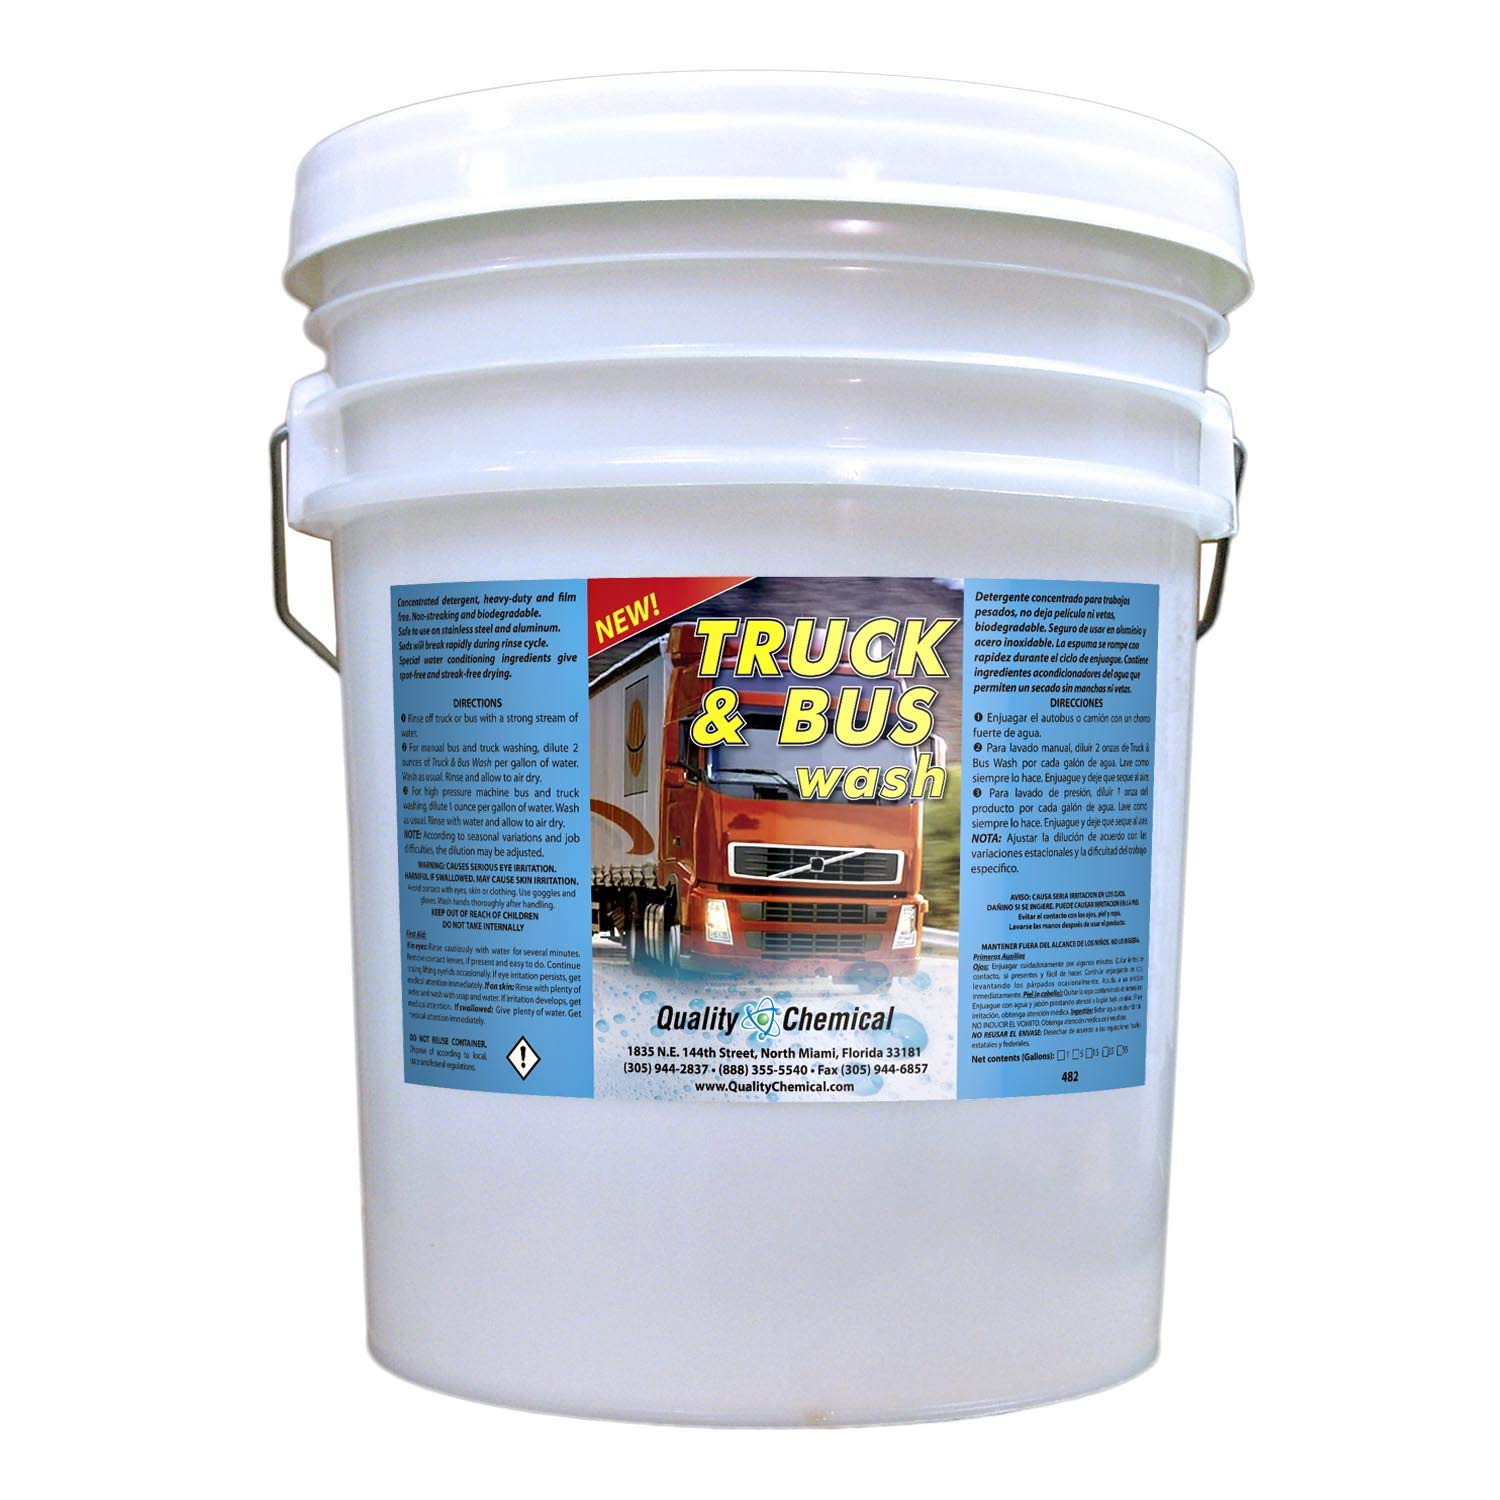 Truck & Bus Wash: Heavy-duty industrial strength, super-foaming, grease-cutting cleaner and degreaser-5 gallon pail